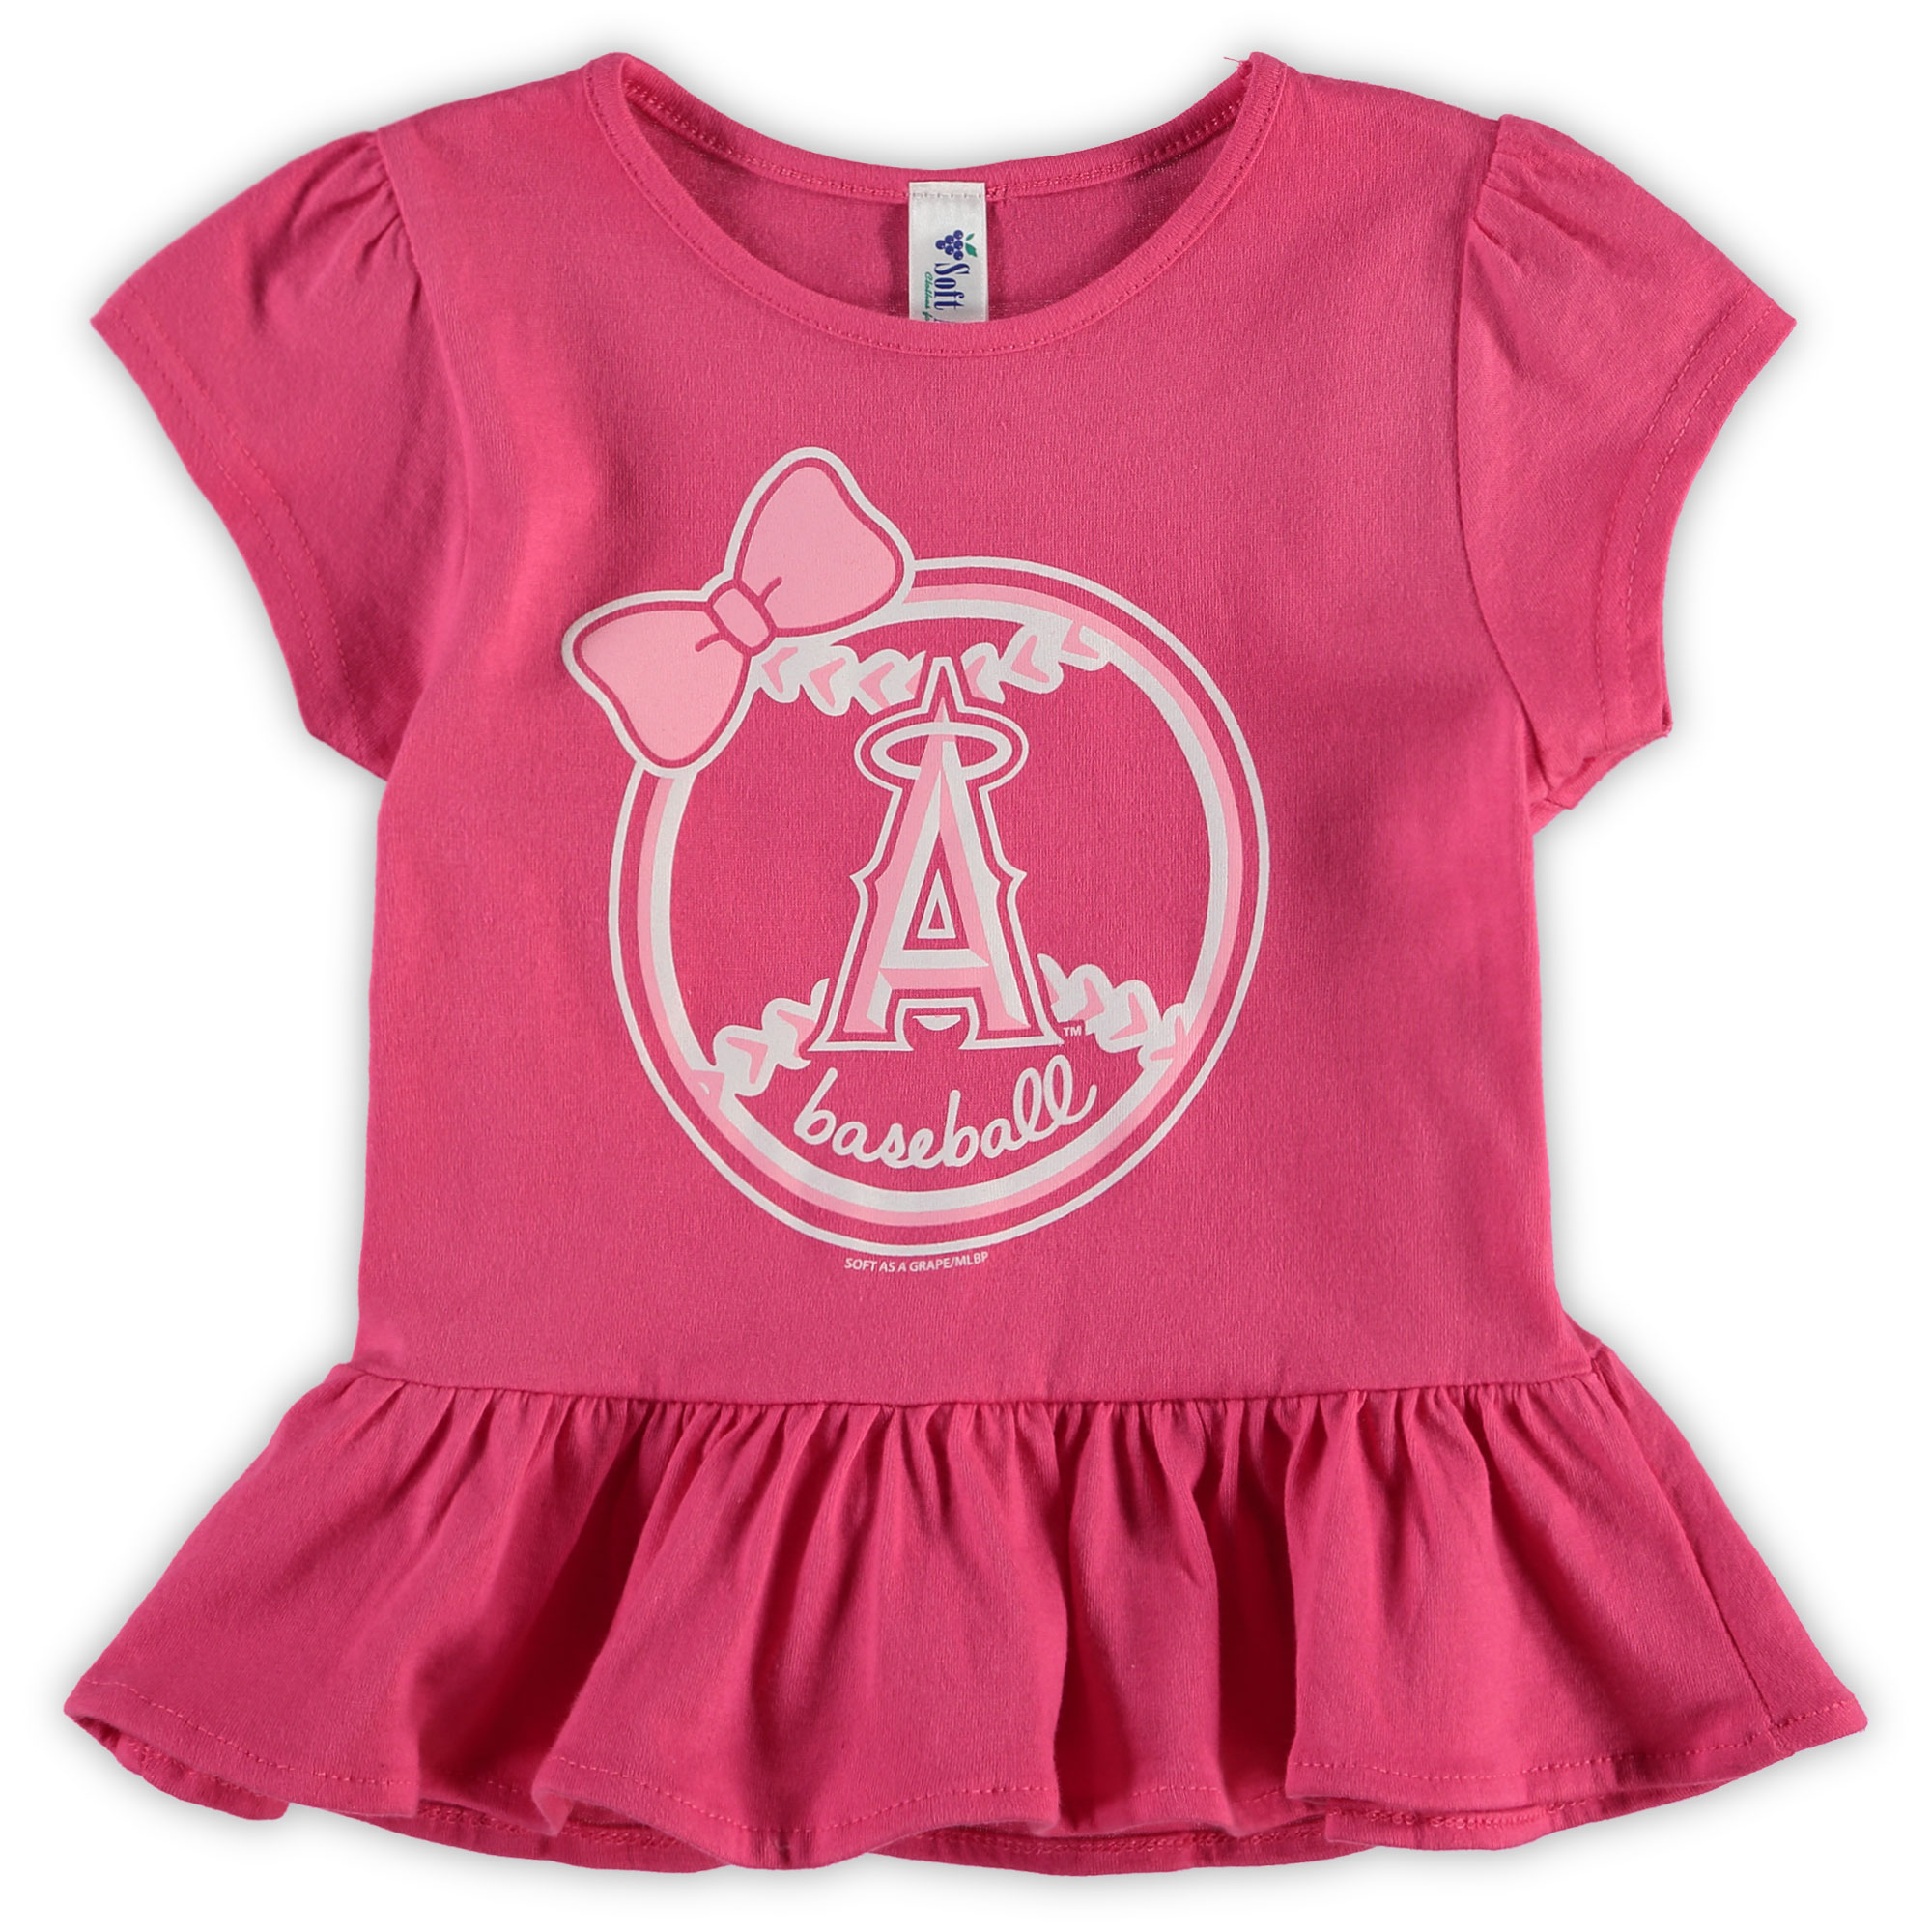 Los Angeles Angels Soft as a Grape Girls Toddler Ruffle T-Shirt - Pink